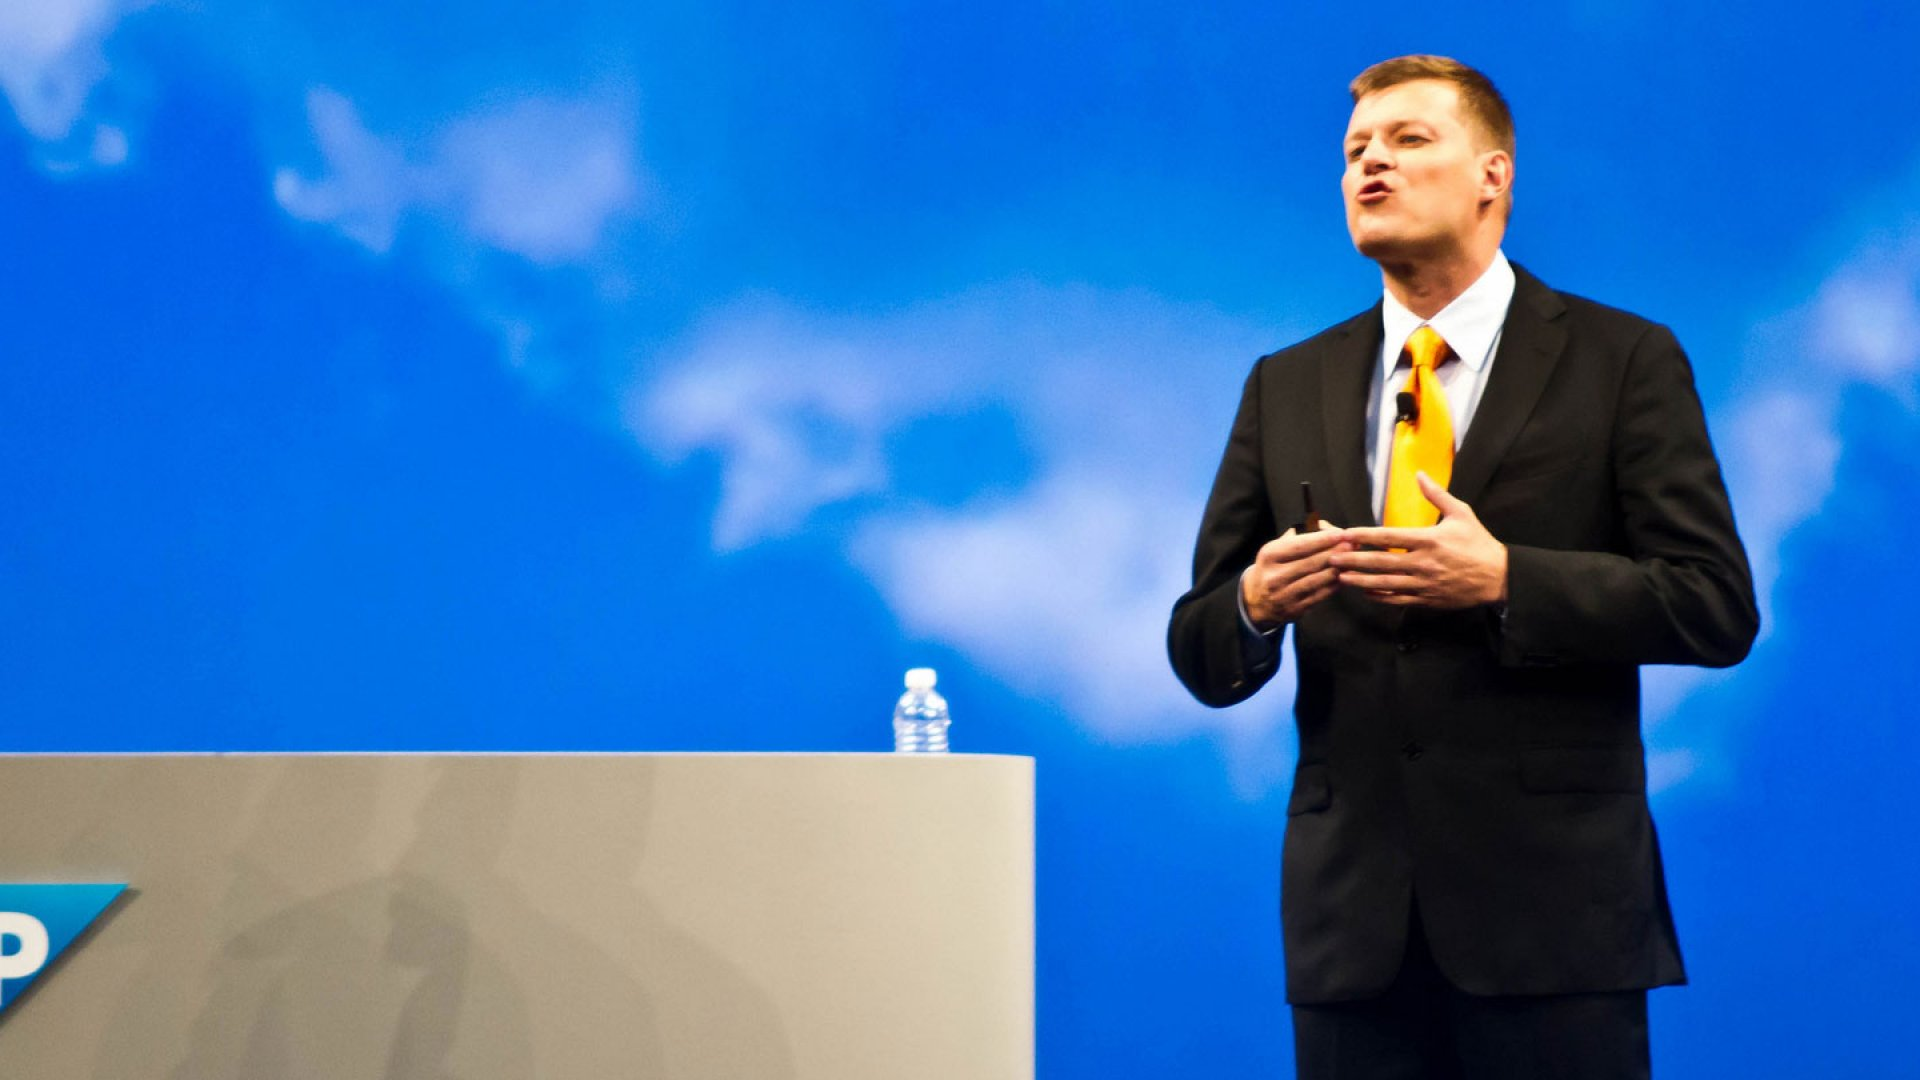 After SuccessFactors sold to SAP for $3.6 billion, founder Lars Dalgaard oversaw the company's cloud operations. Now, he's a VC at Andreessen Horowitz.